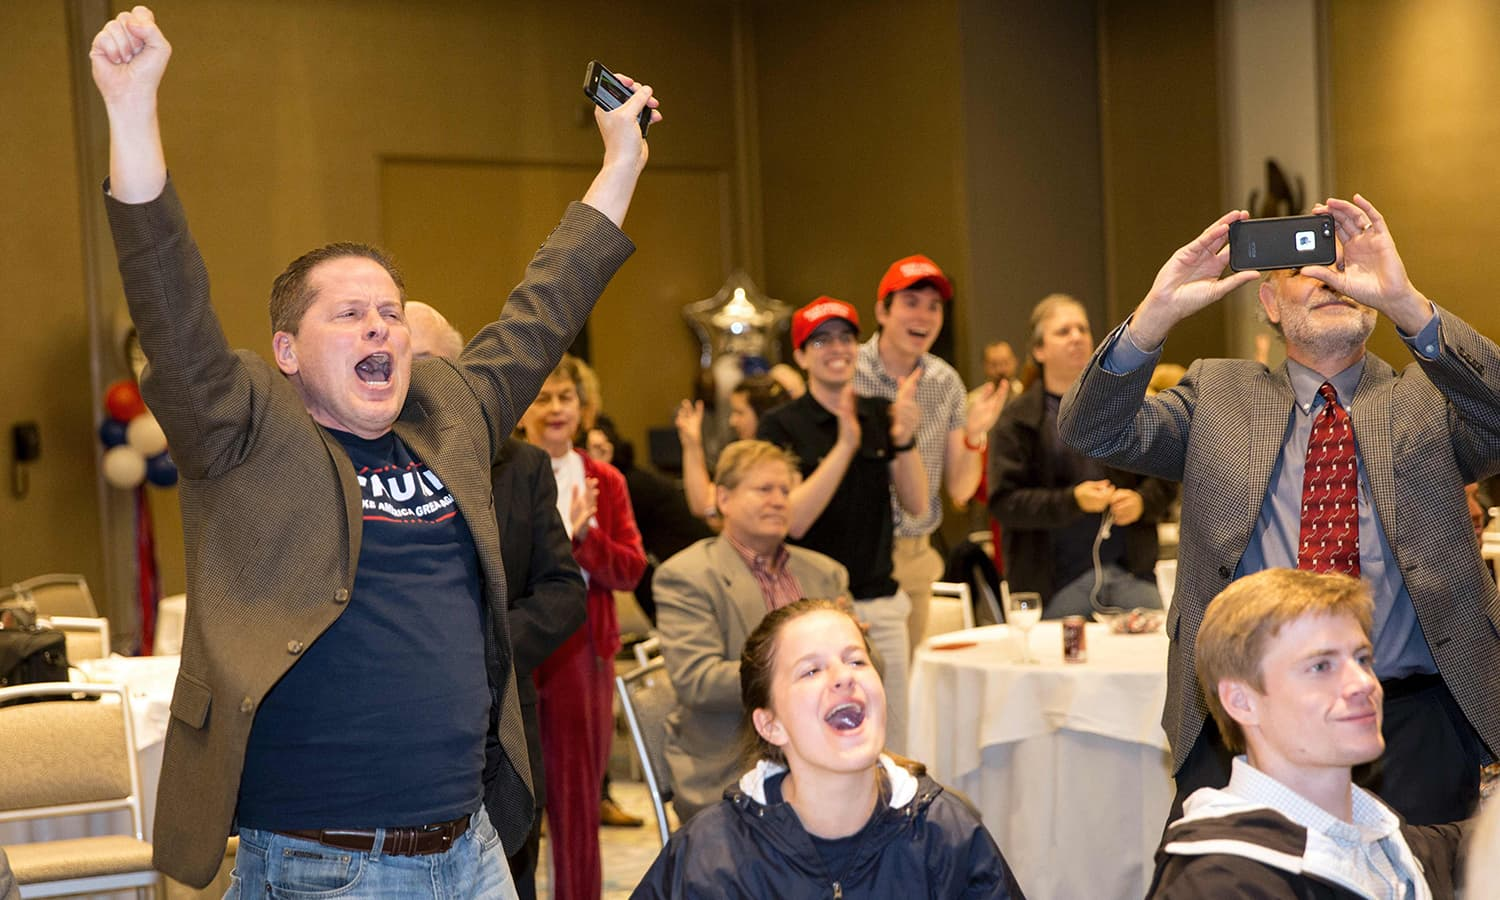 Attendees celebrate election returns during a Republican watch party in Dallas, Texas.— AFP